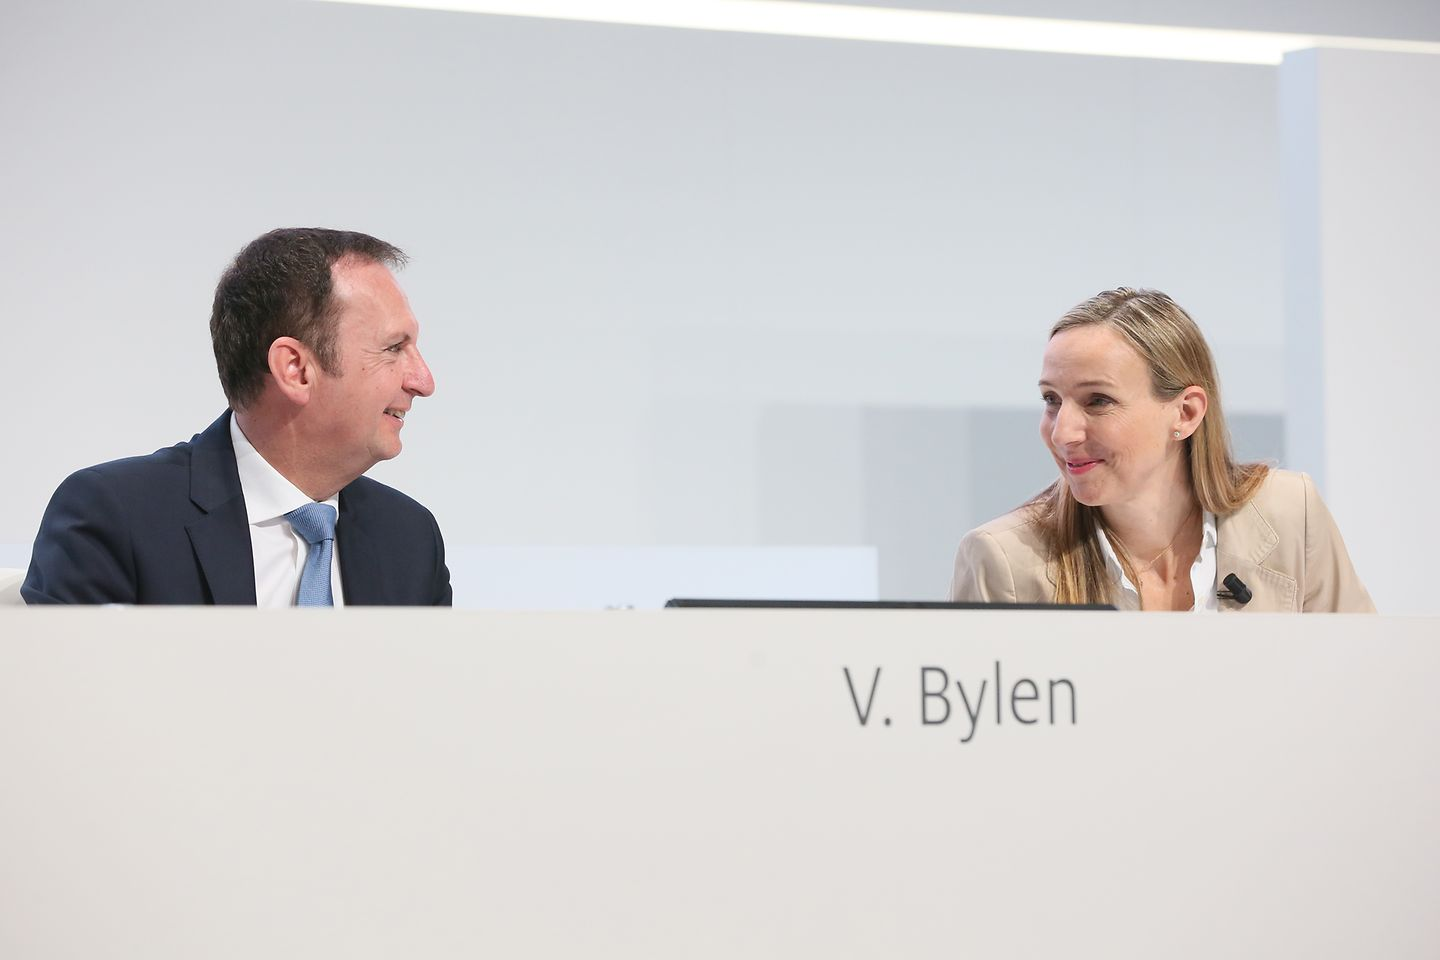 CEO Hans Van Bylen and Dr. Simone Bagel-Trah, Chairwoman of the Shareholders' Committee and Supervisory Board